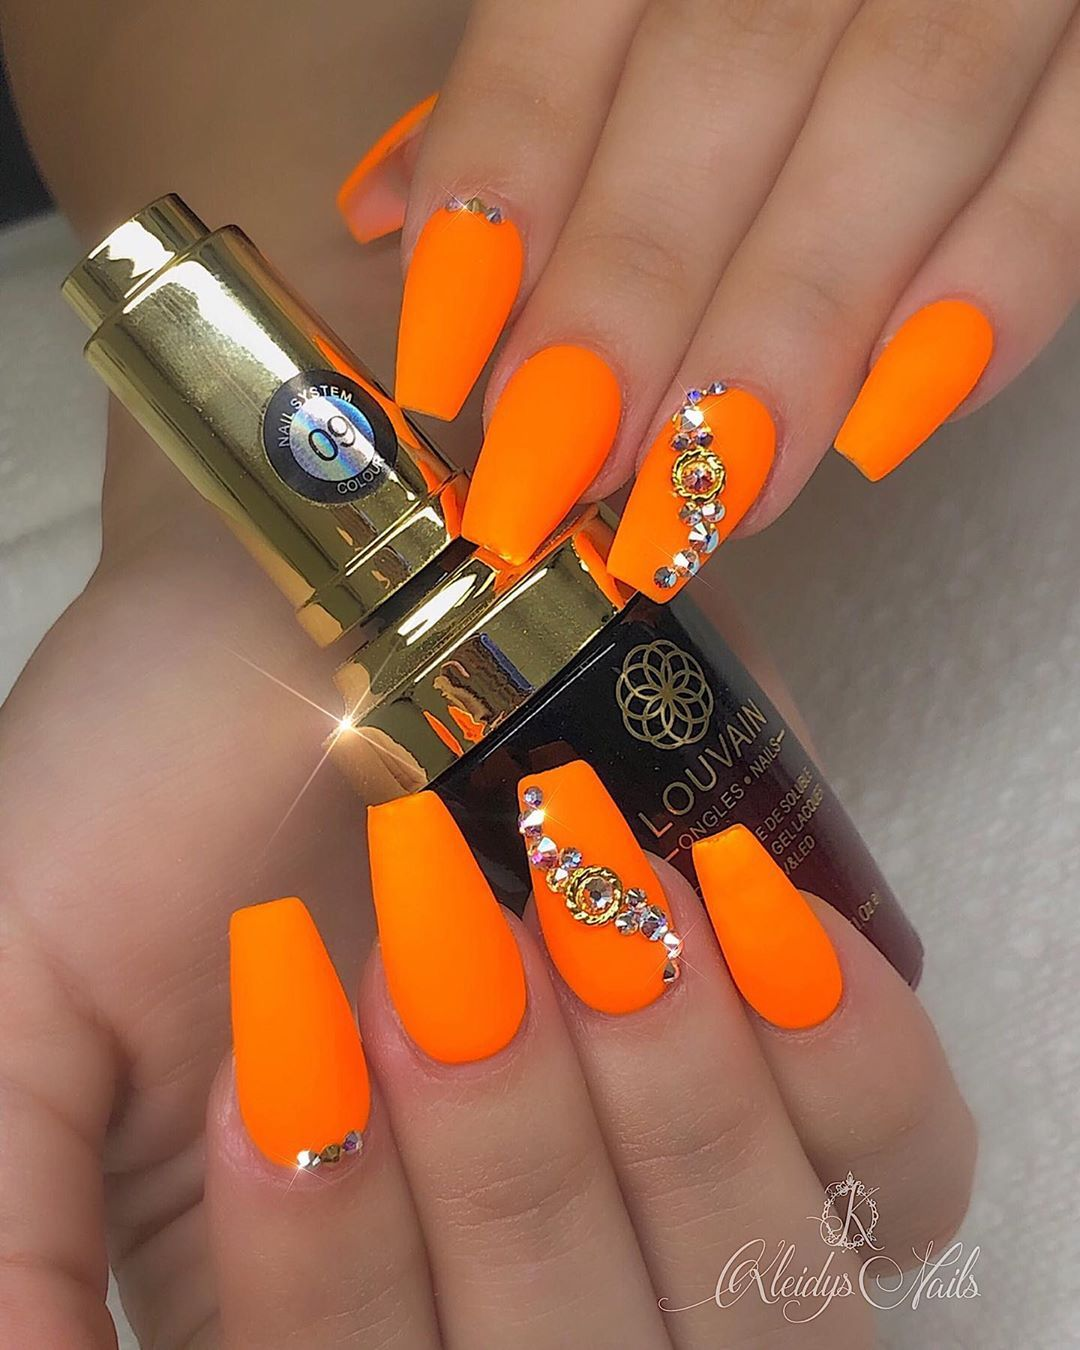 Electric Color 09 From Louvainofficial Glowinthedarknails Glow Nails 09 Beverlyhills Orange Nail Art Nail Art Designs Orange Acrylic Nails